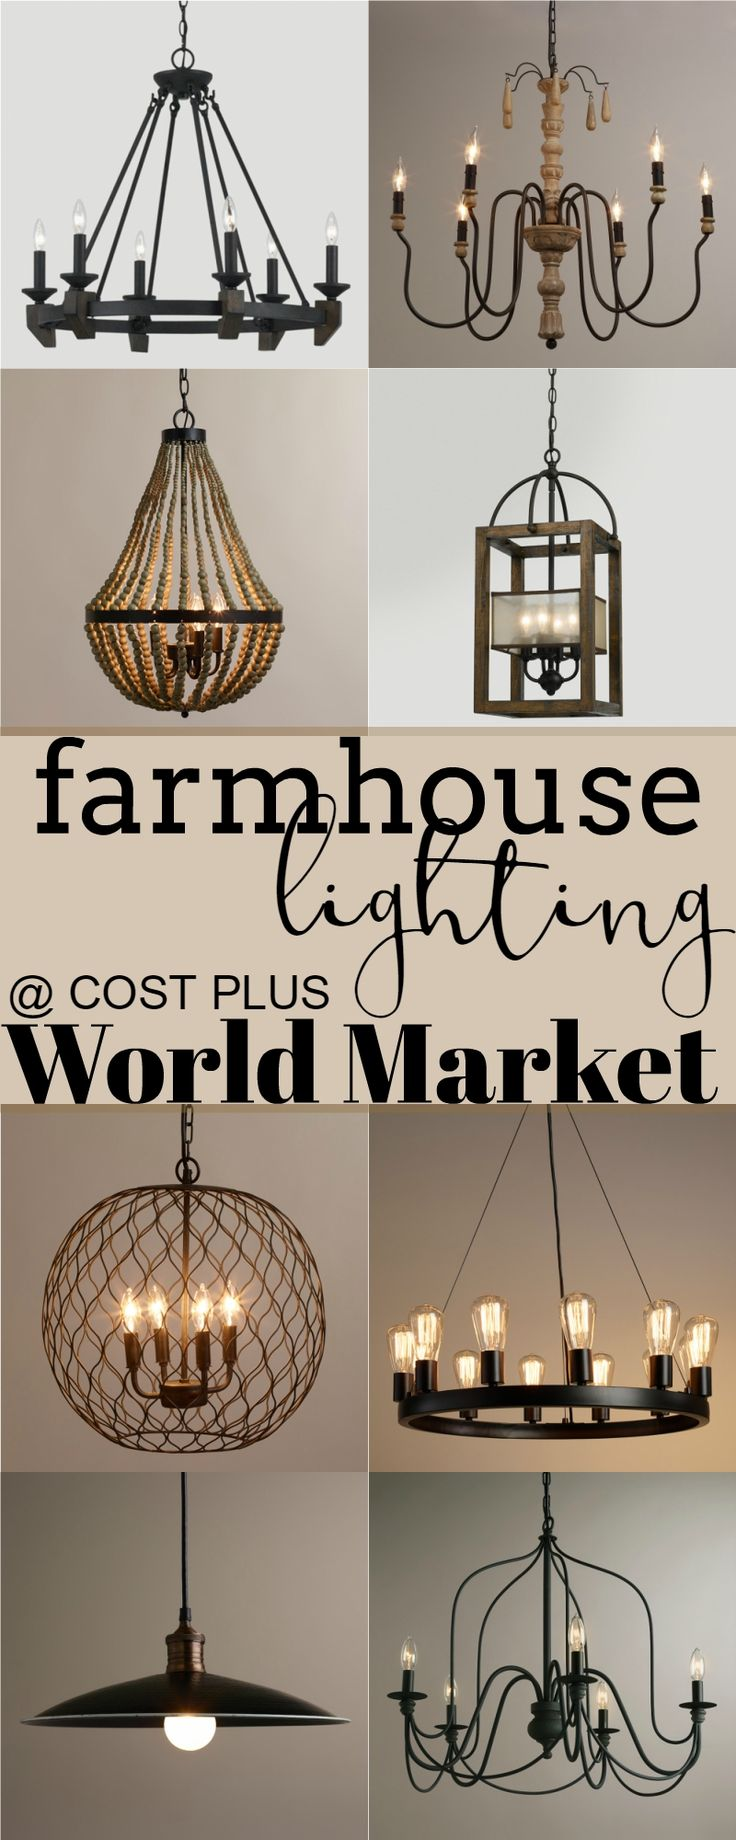 rustic lighting farmhouse kitchen lighting fixtures Cost Plus World Market is my go to for unique finds These light fixtures are